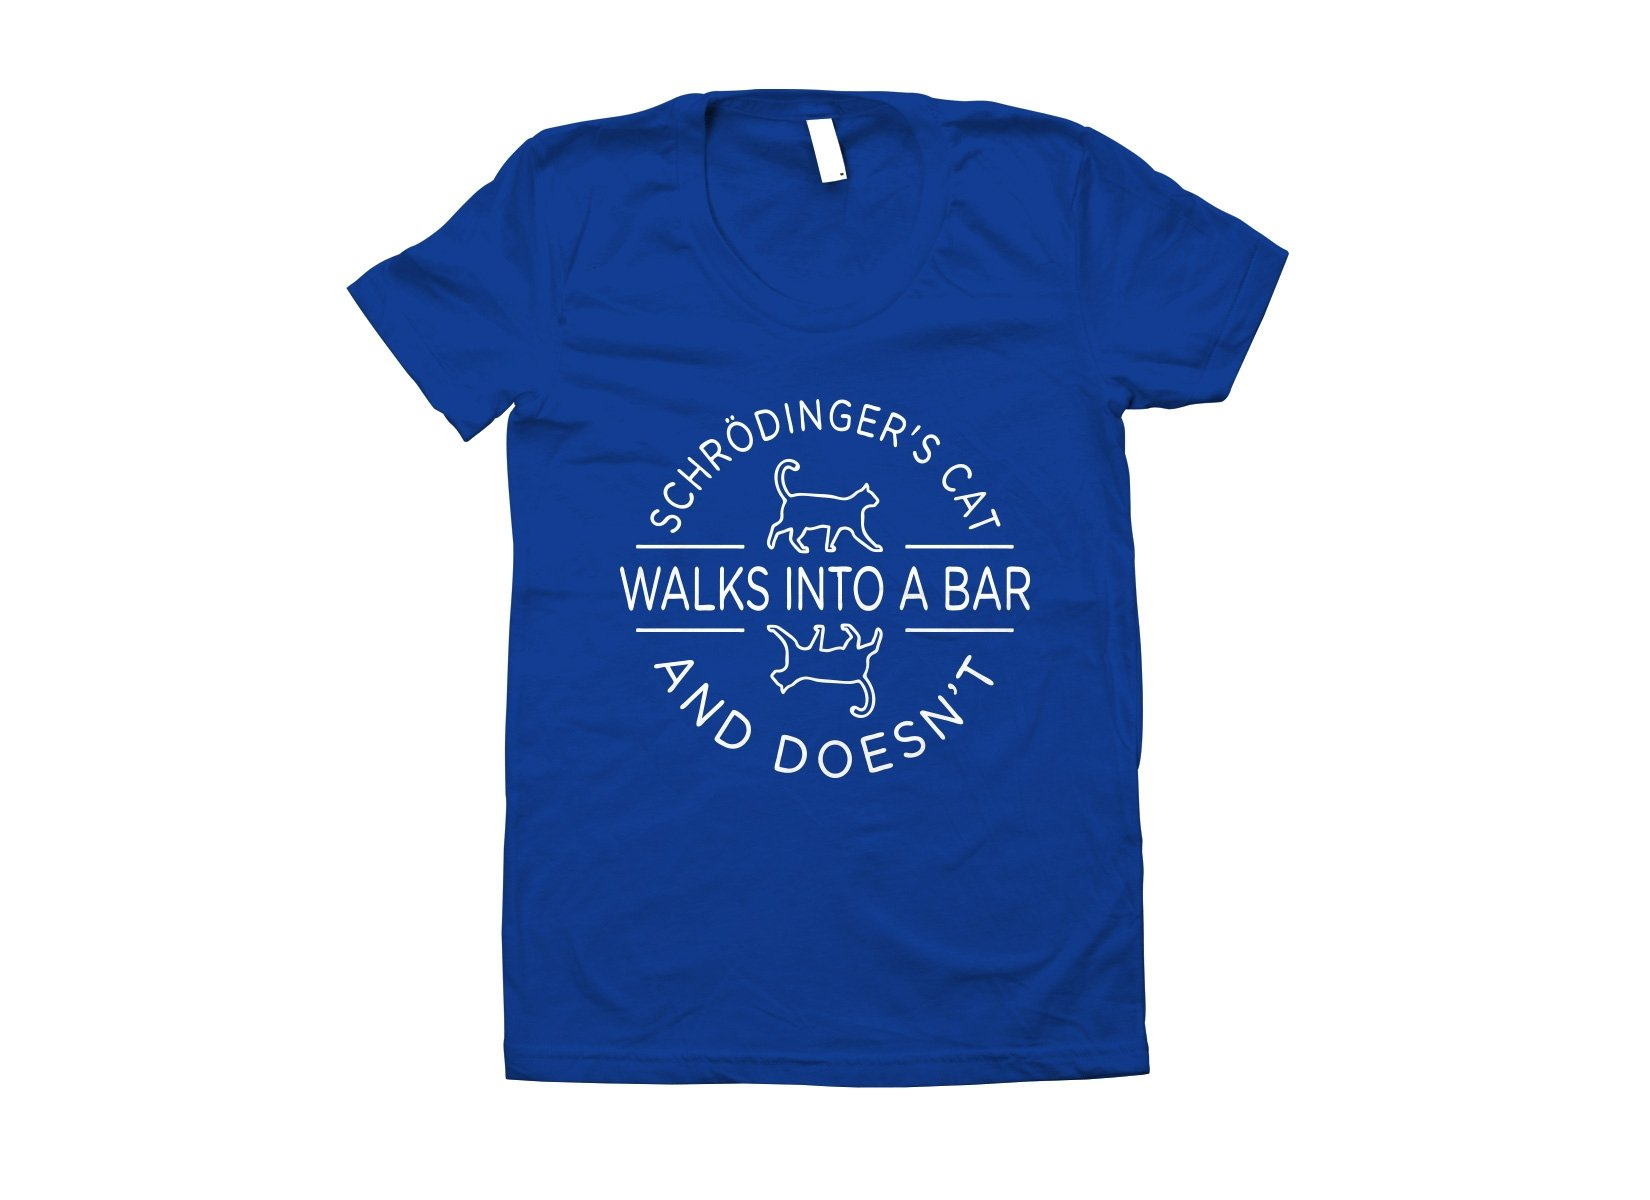 Schrodinger's Cat Walks Into A Bar on Juniors T-Shirt